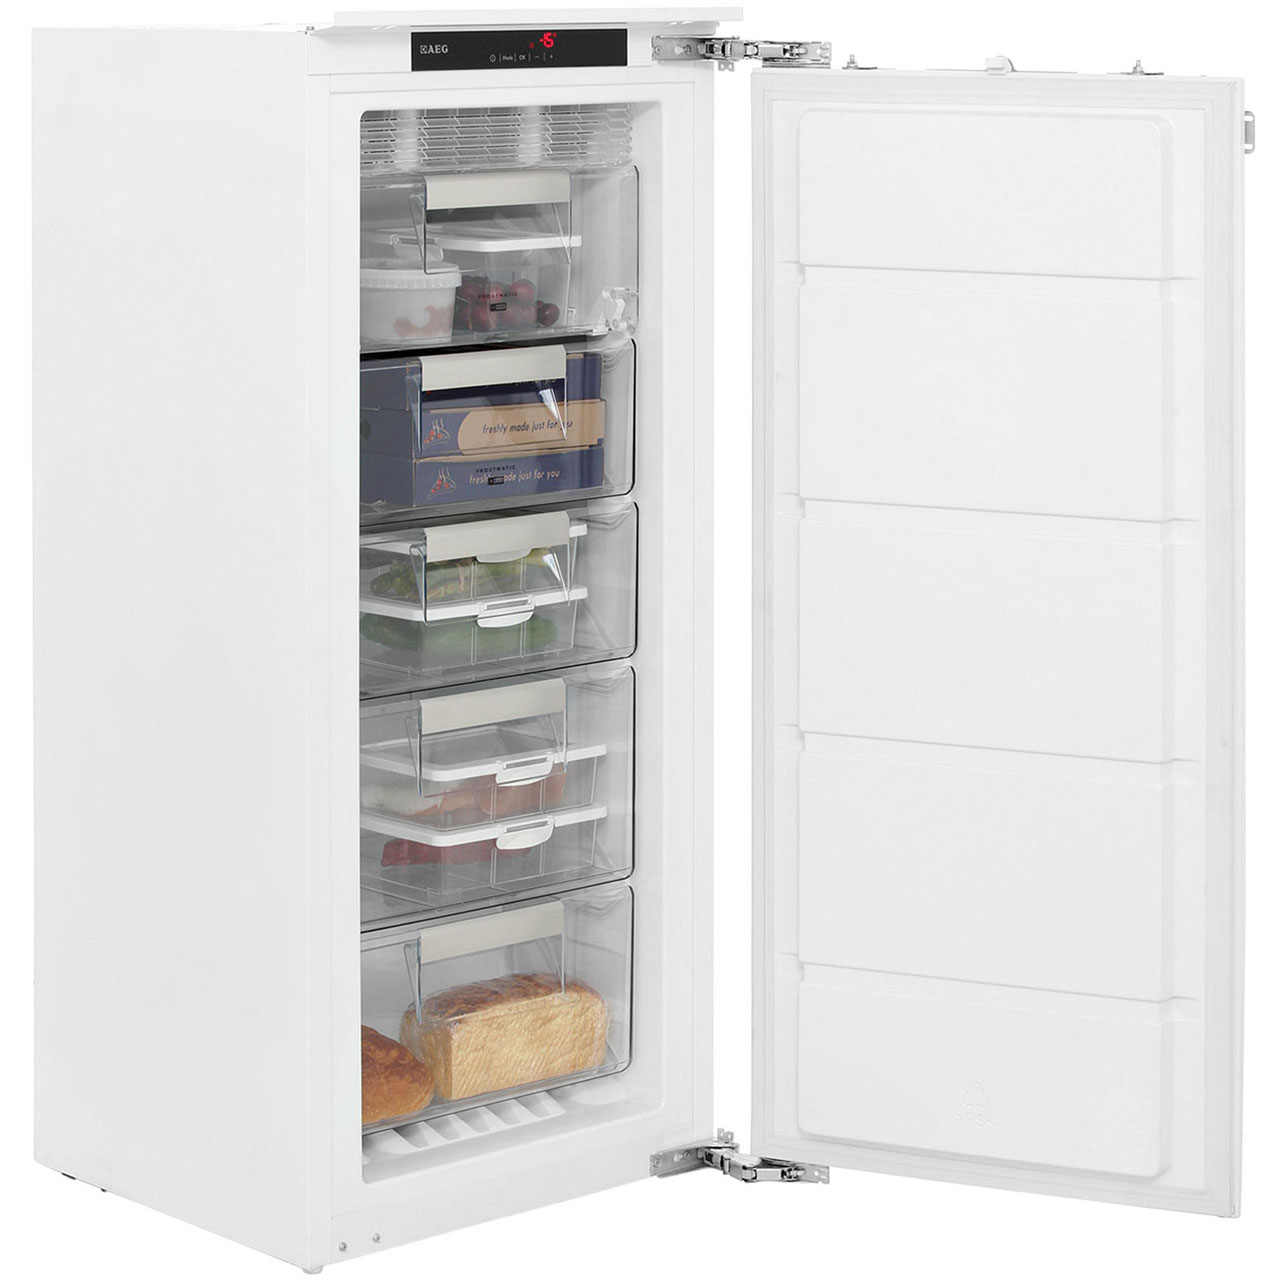 aeg agn58216f1 integrated freezer frost free in white aeg advice questions answered. Black Bedroom Furniture Sets. Home Design Ideas